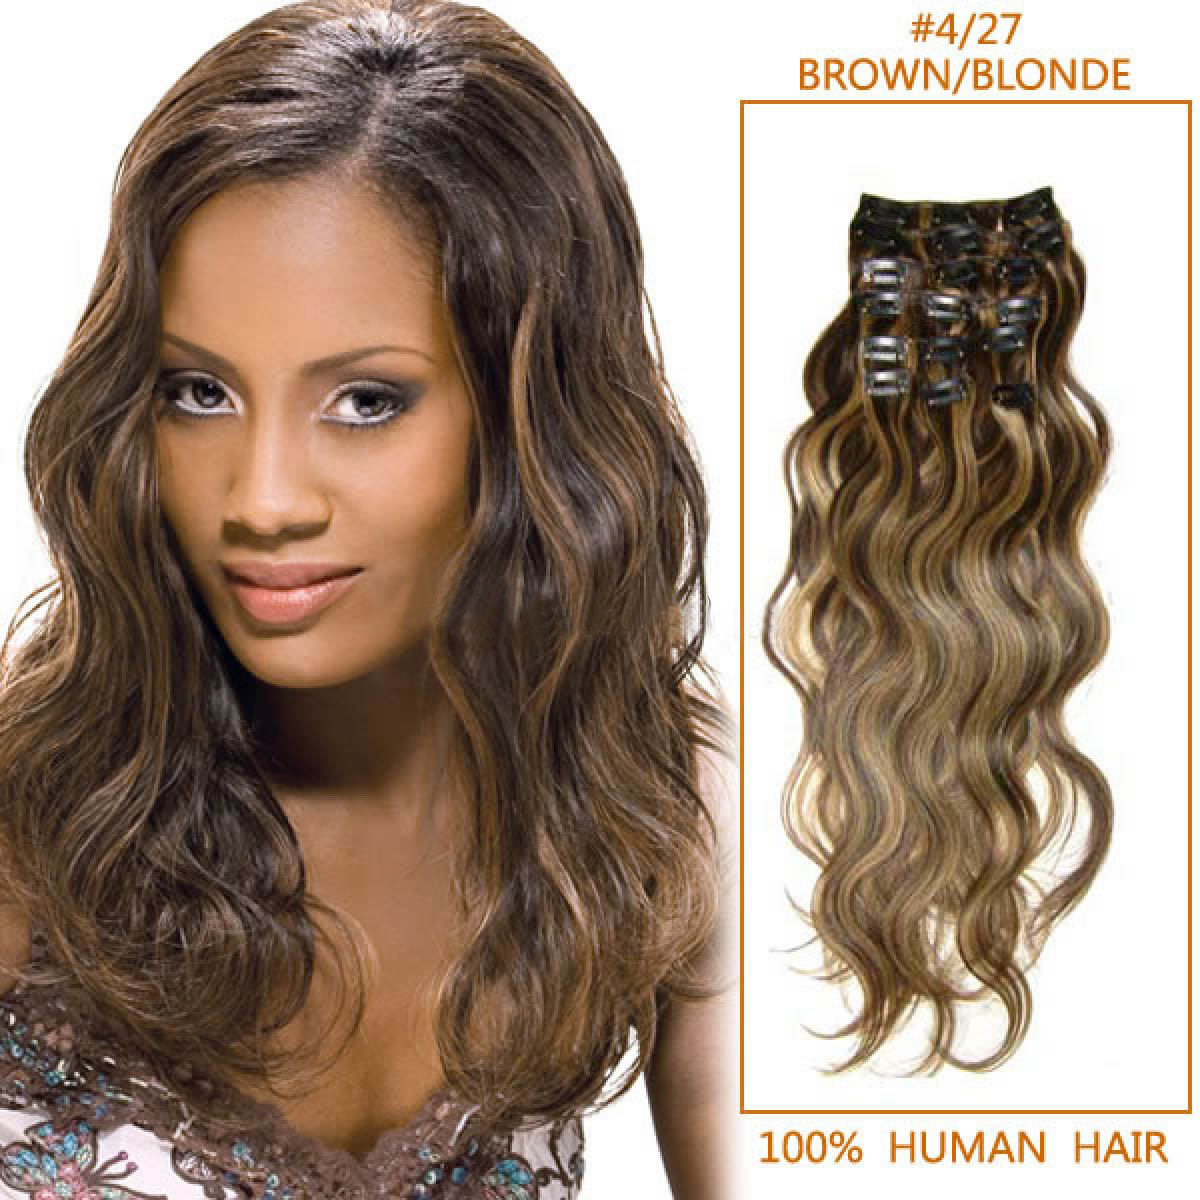 Wavy Blonde Human Hair Extensions 115